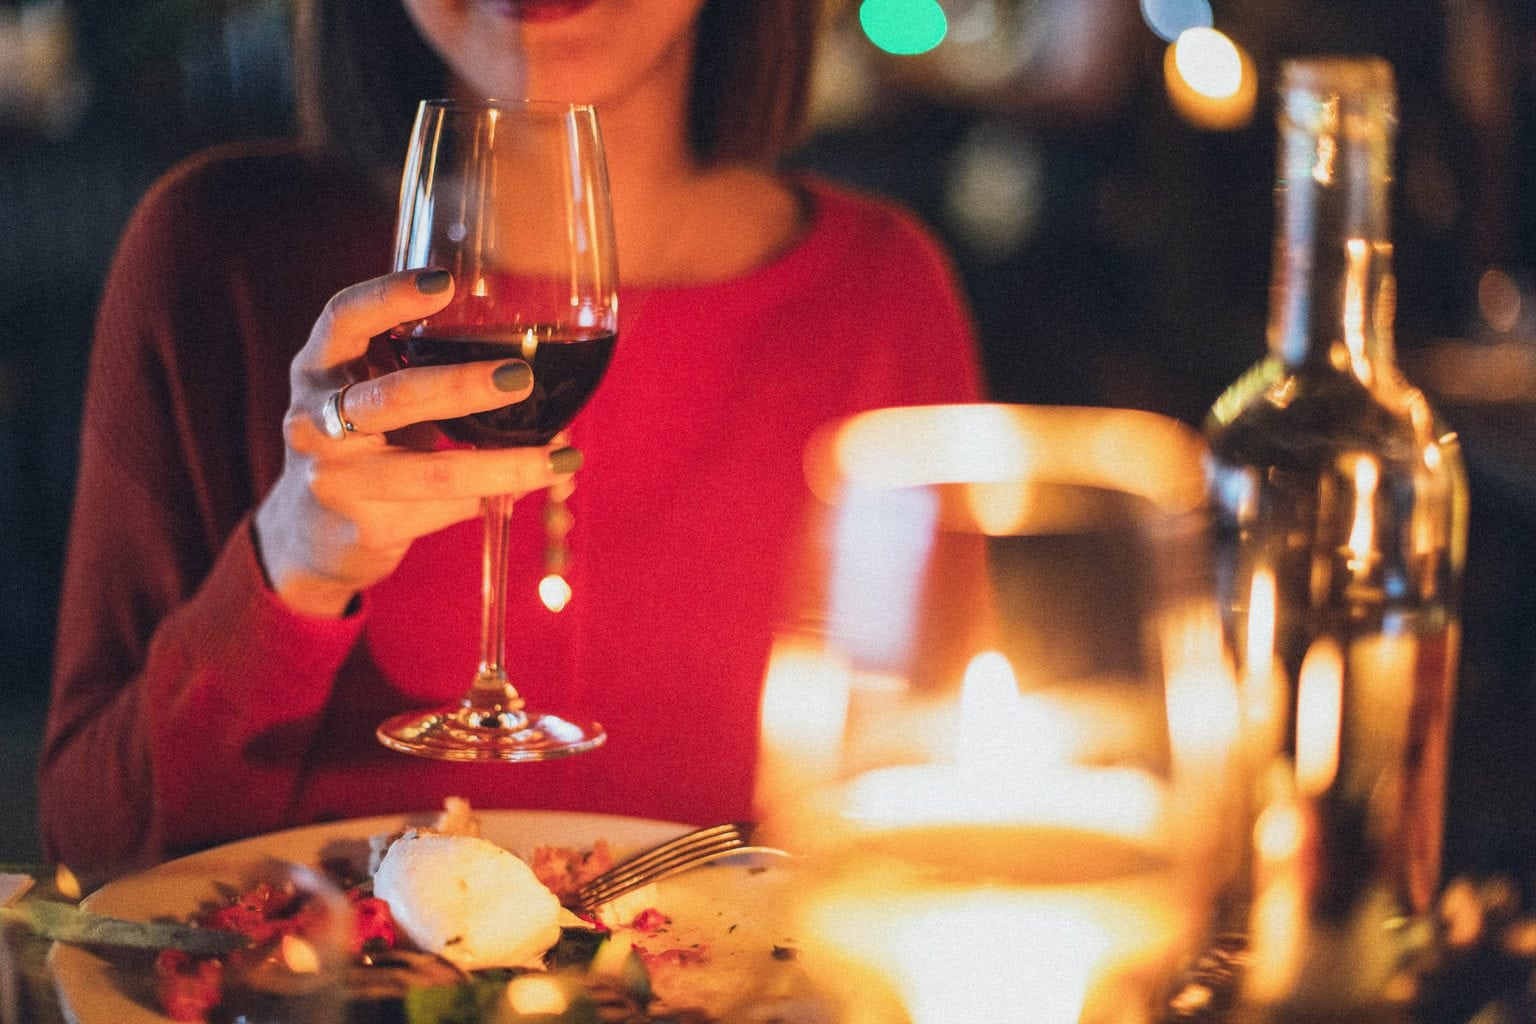 at home date ideas woman holding glass of wine over dinner table source: elinasazonova from Pexels